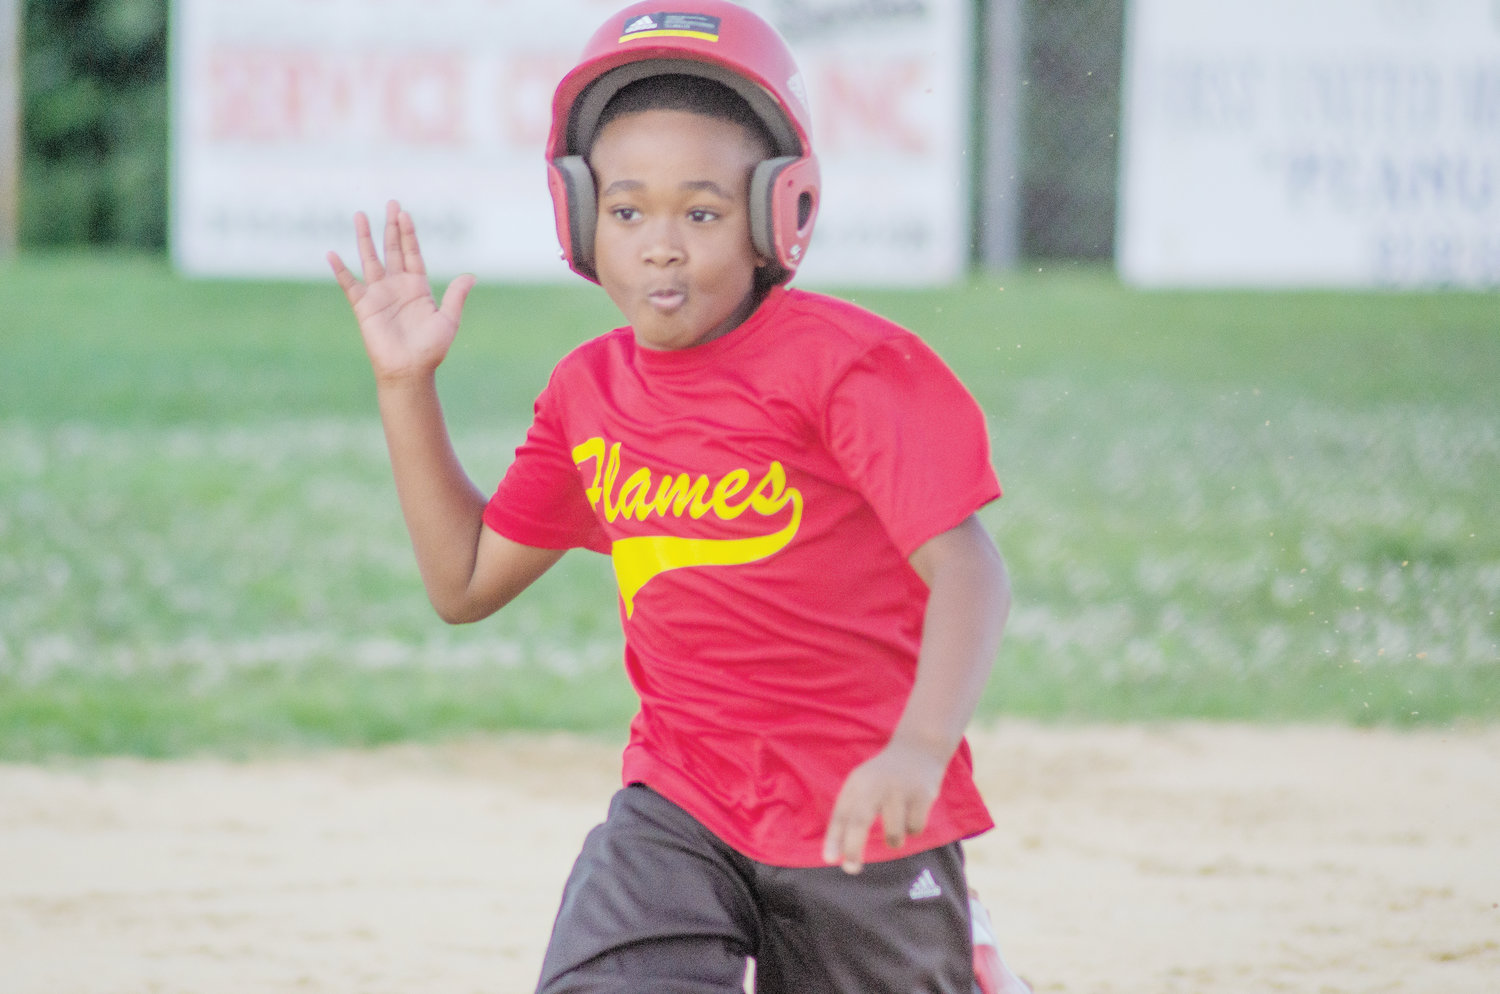 Xion Atkins of the Mount Olive Flames runs to third base during the Flames' game against Spring Creek on Tuesday, June 11.